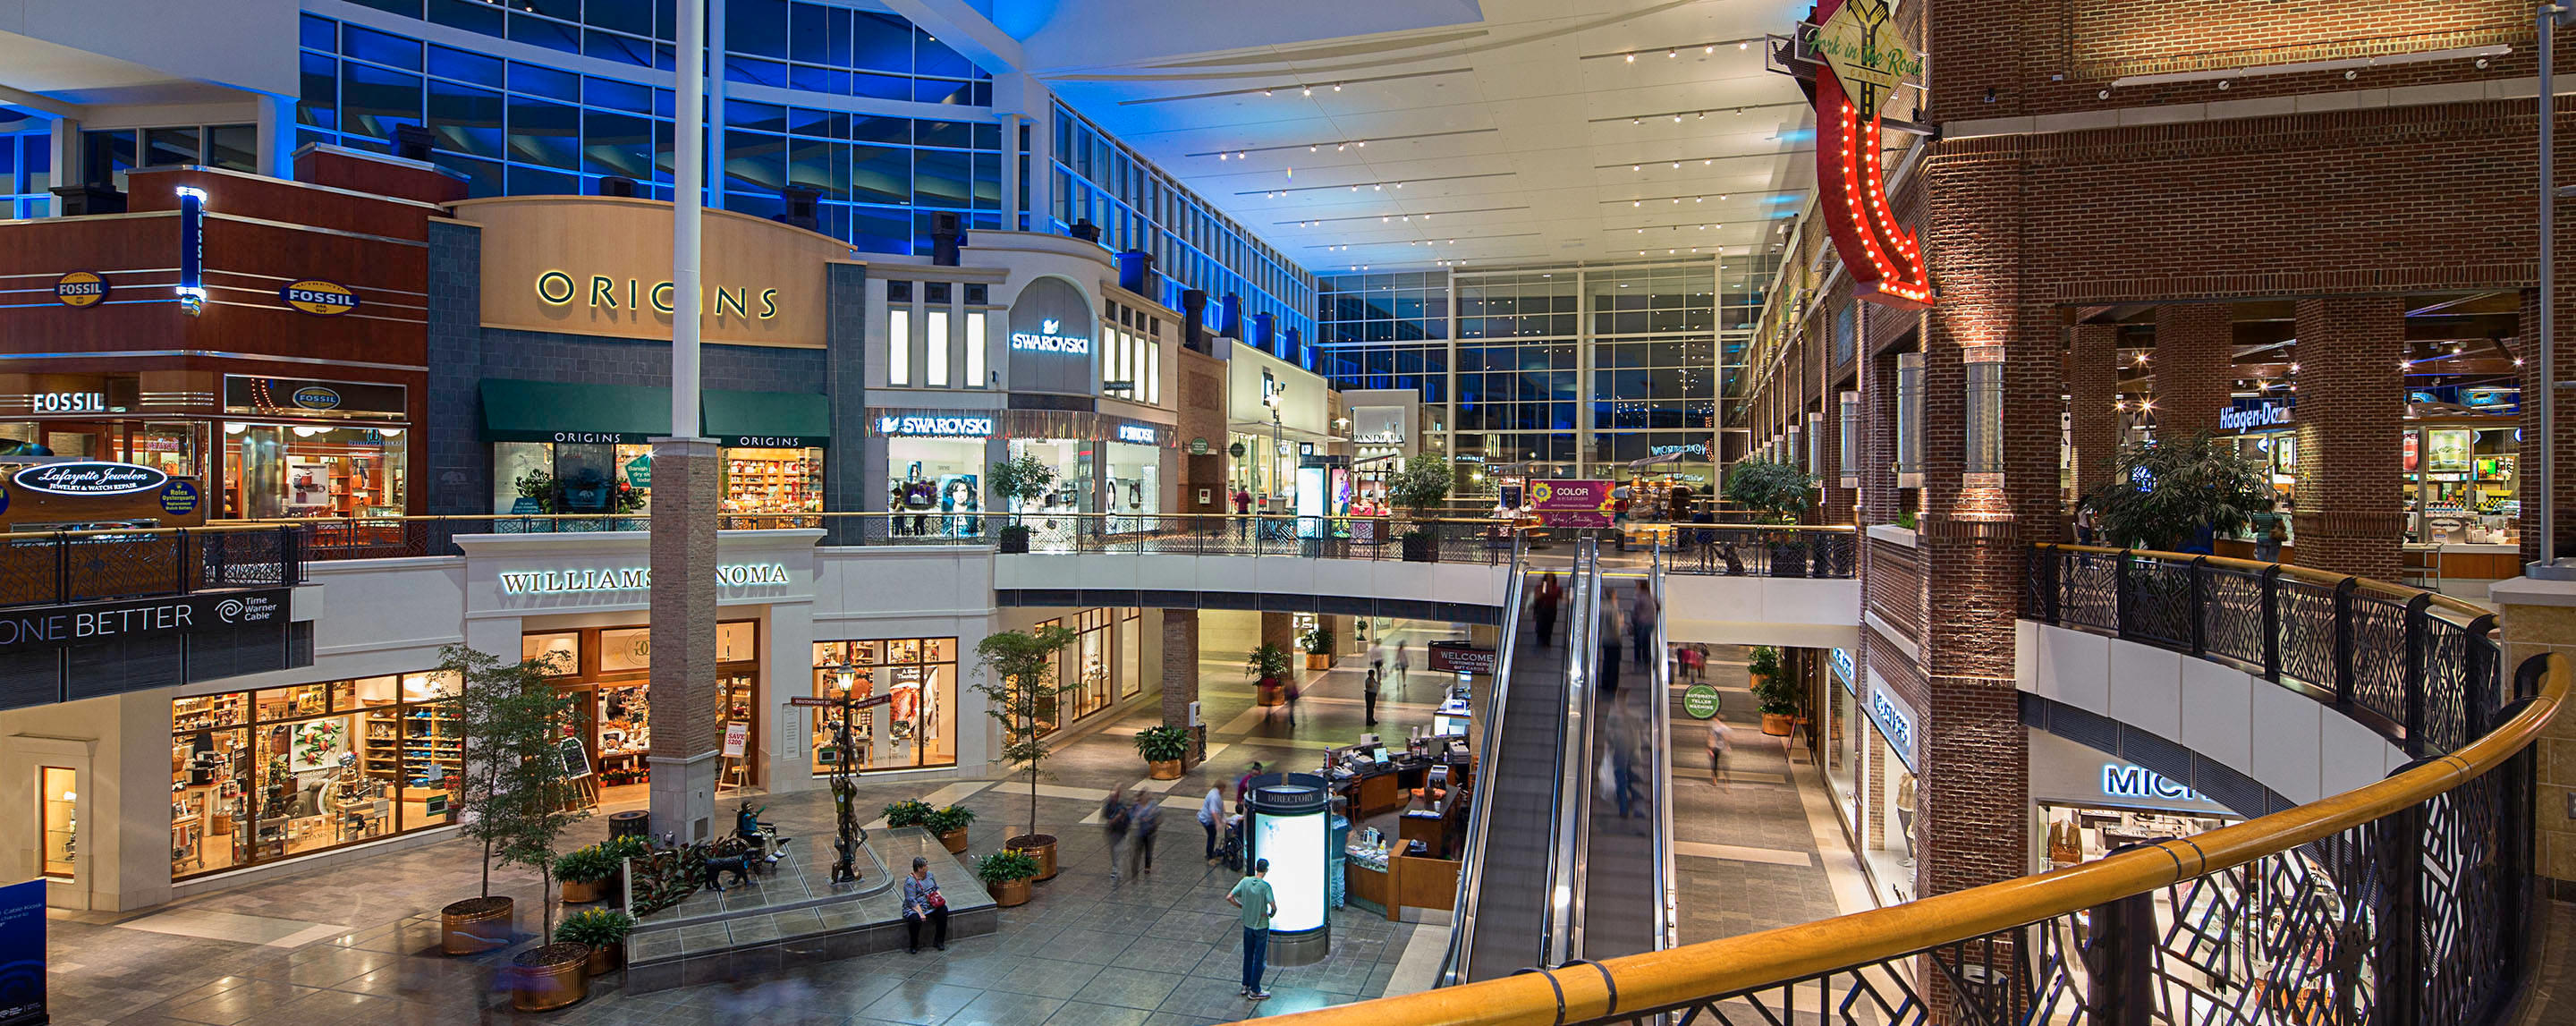 The Streets at Southpoint image 3